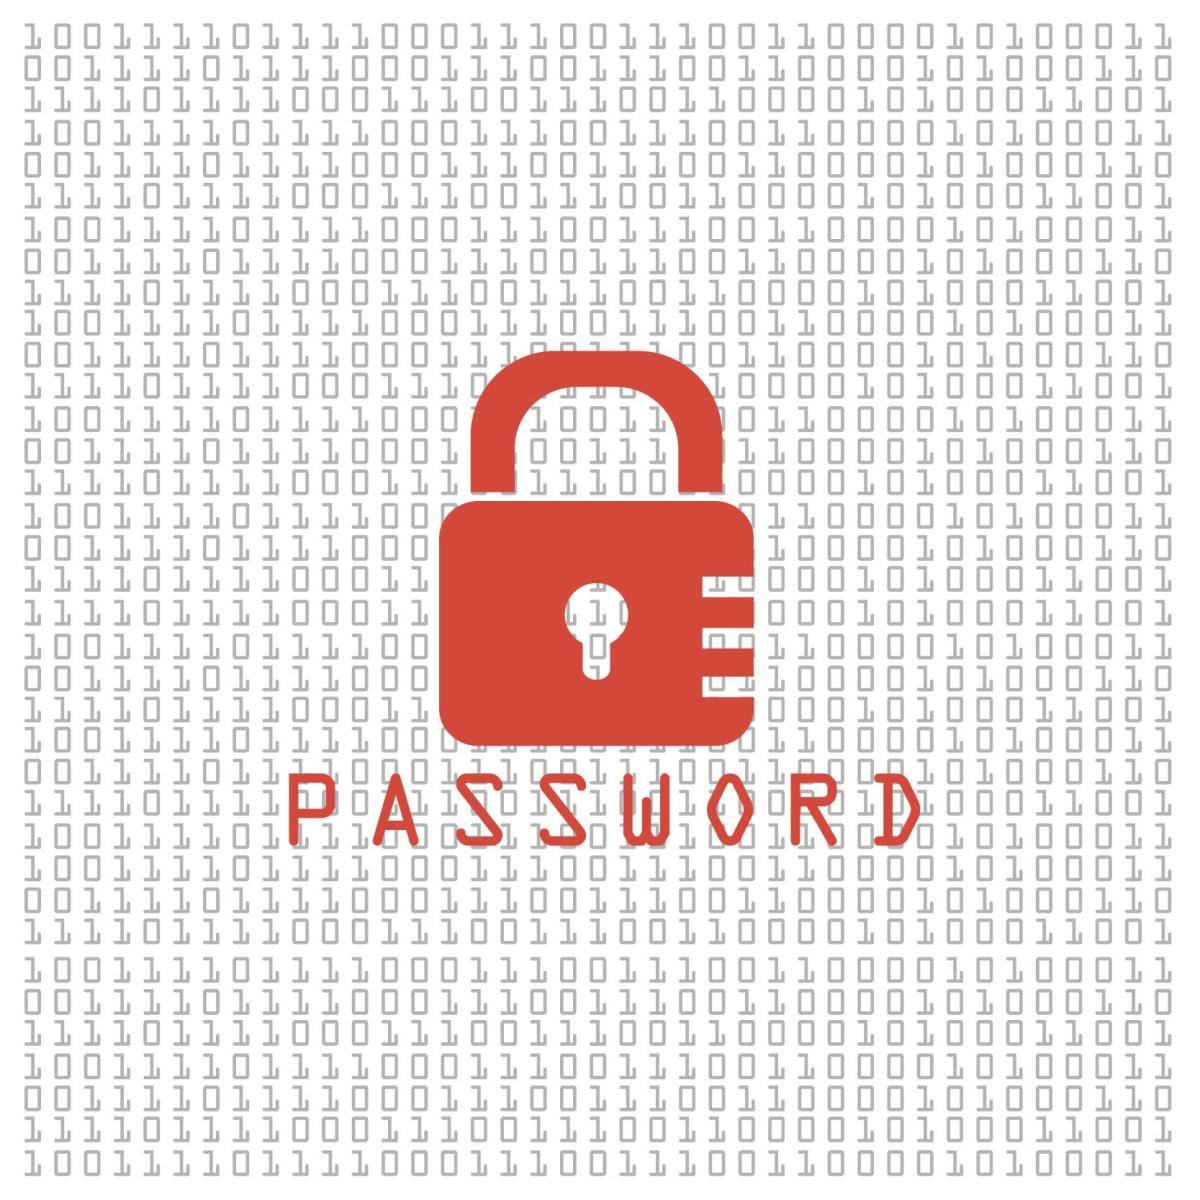 How to Open Password Protected Zip File without password?